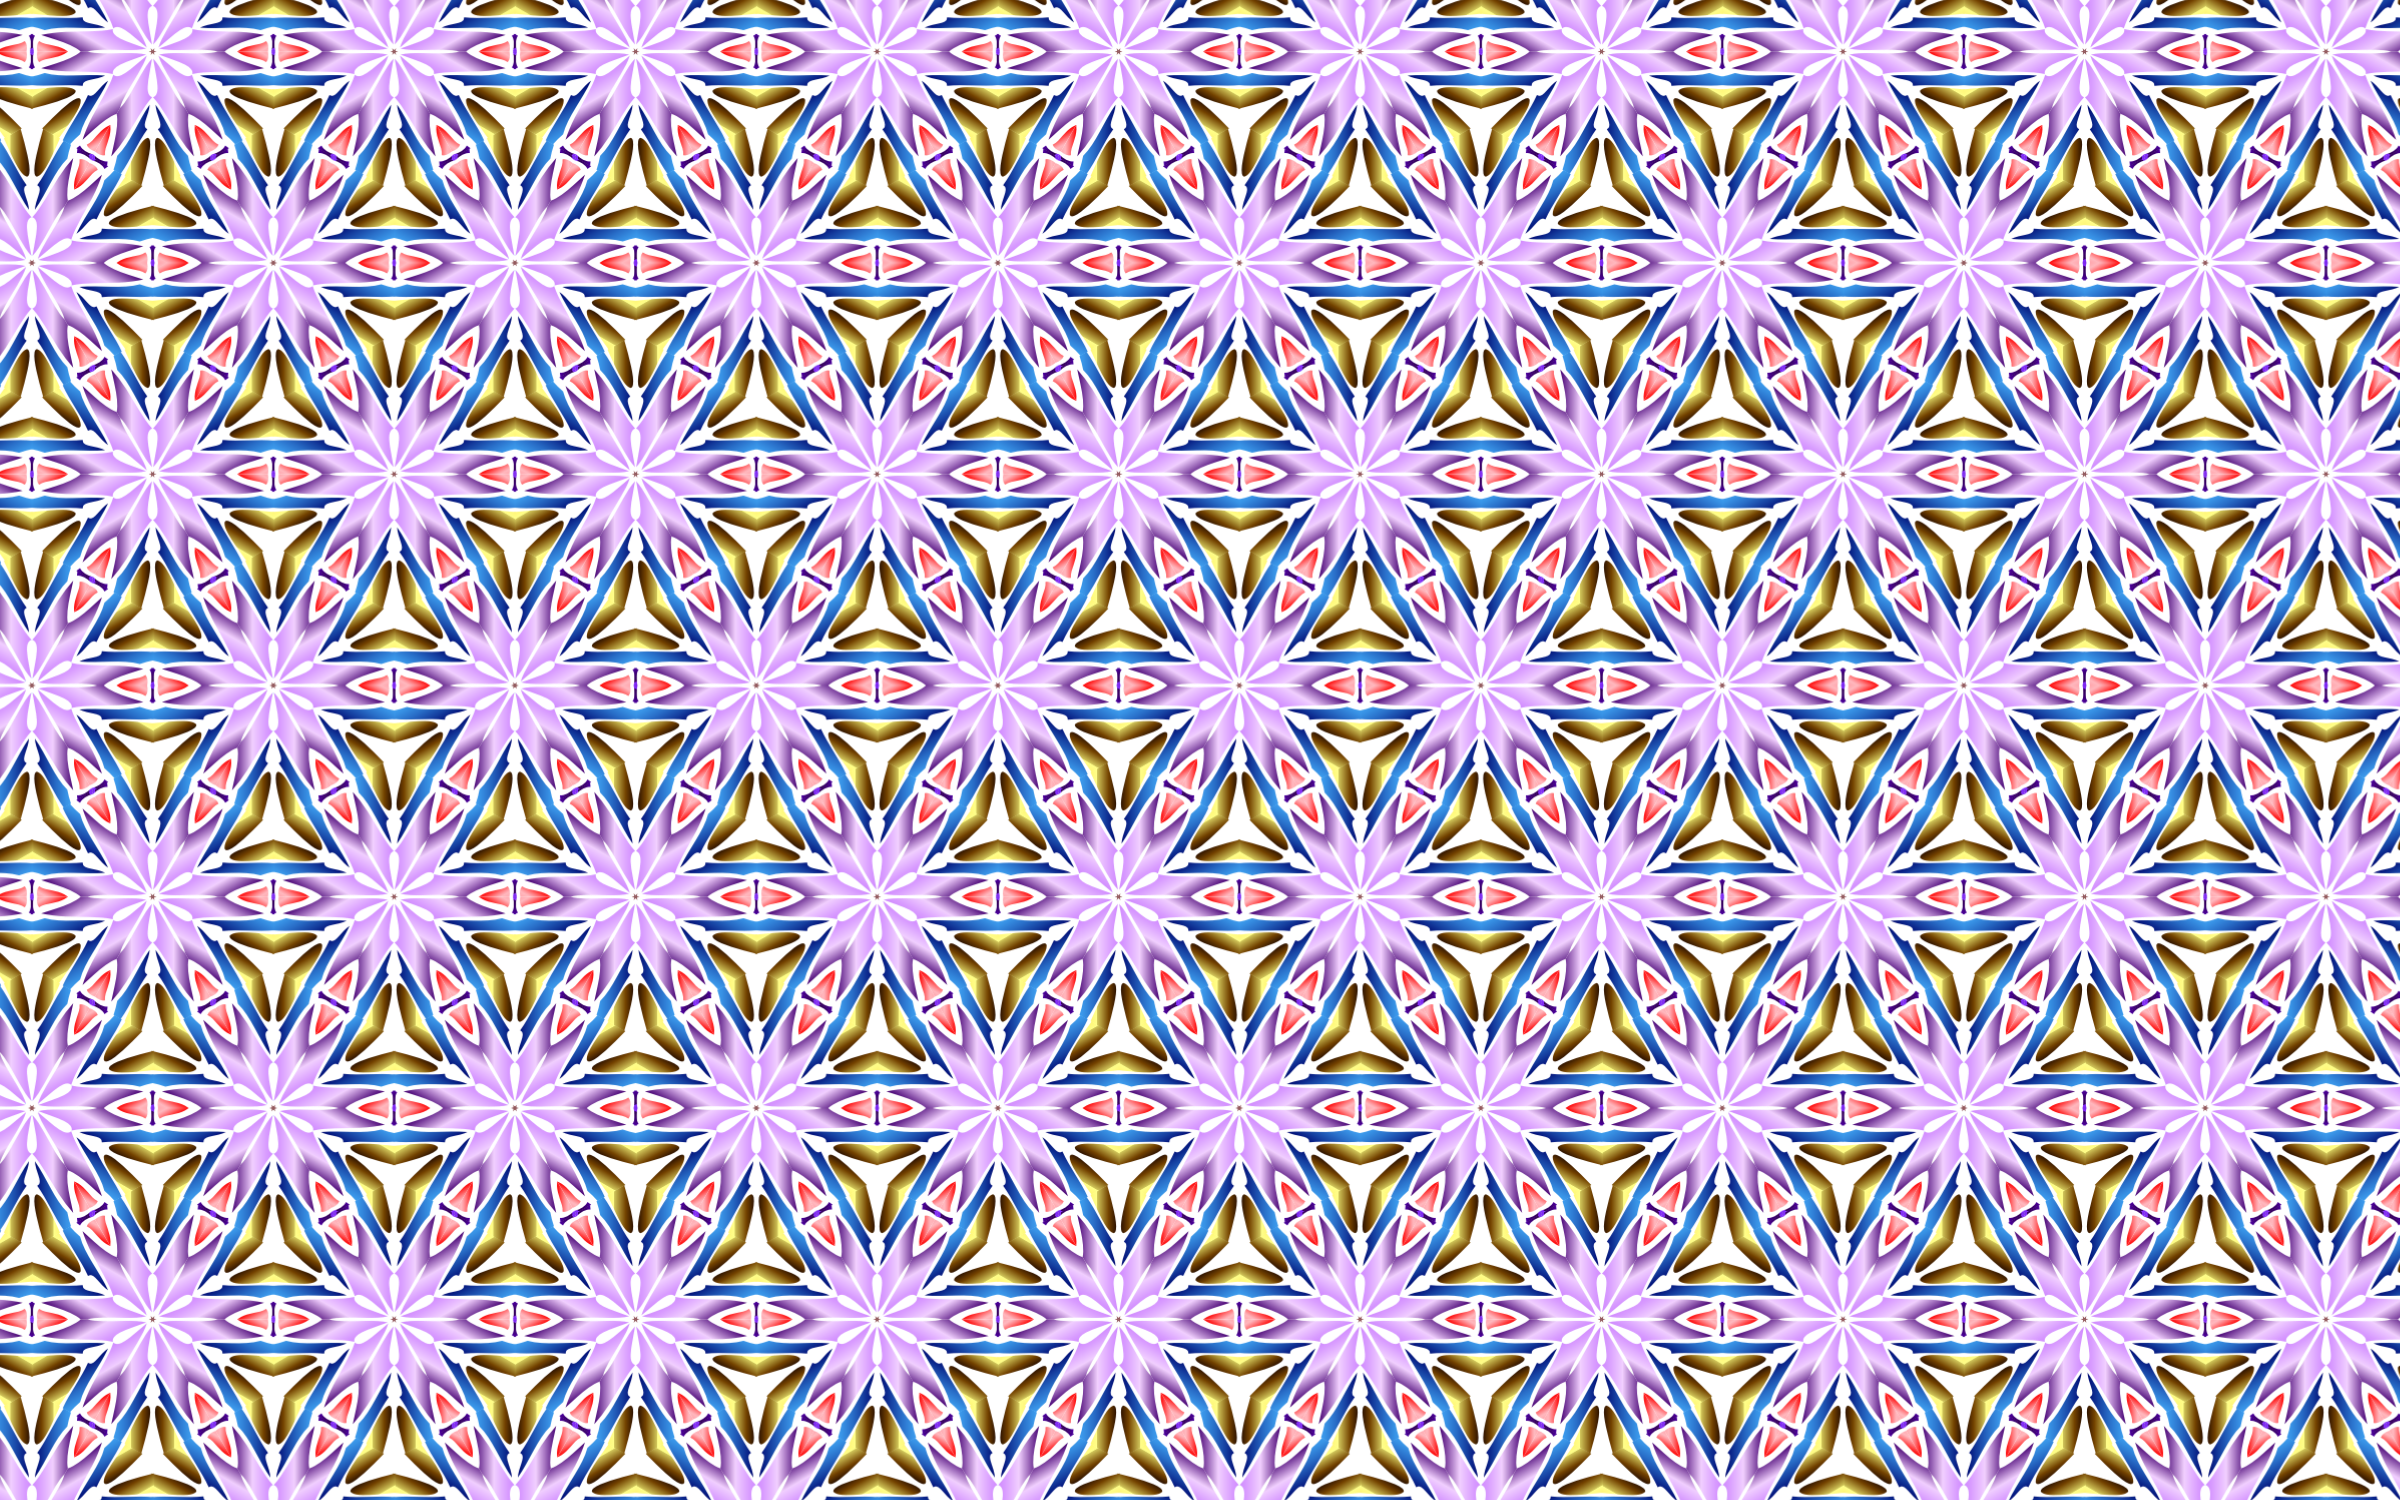 Chromatic Widescreen Pattern 2 by GDJ